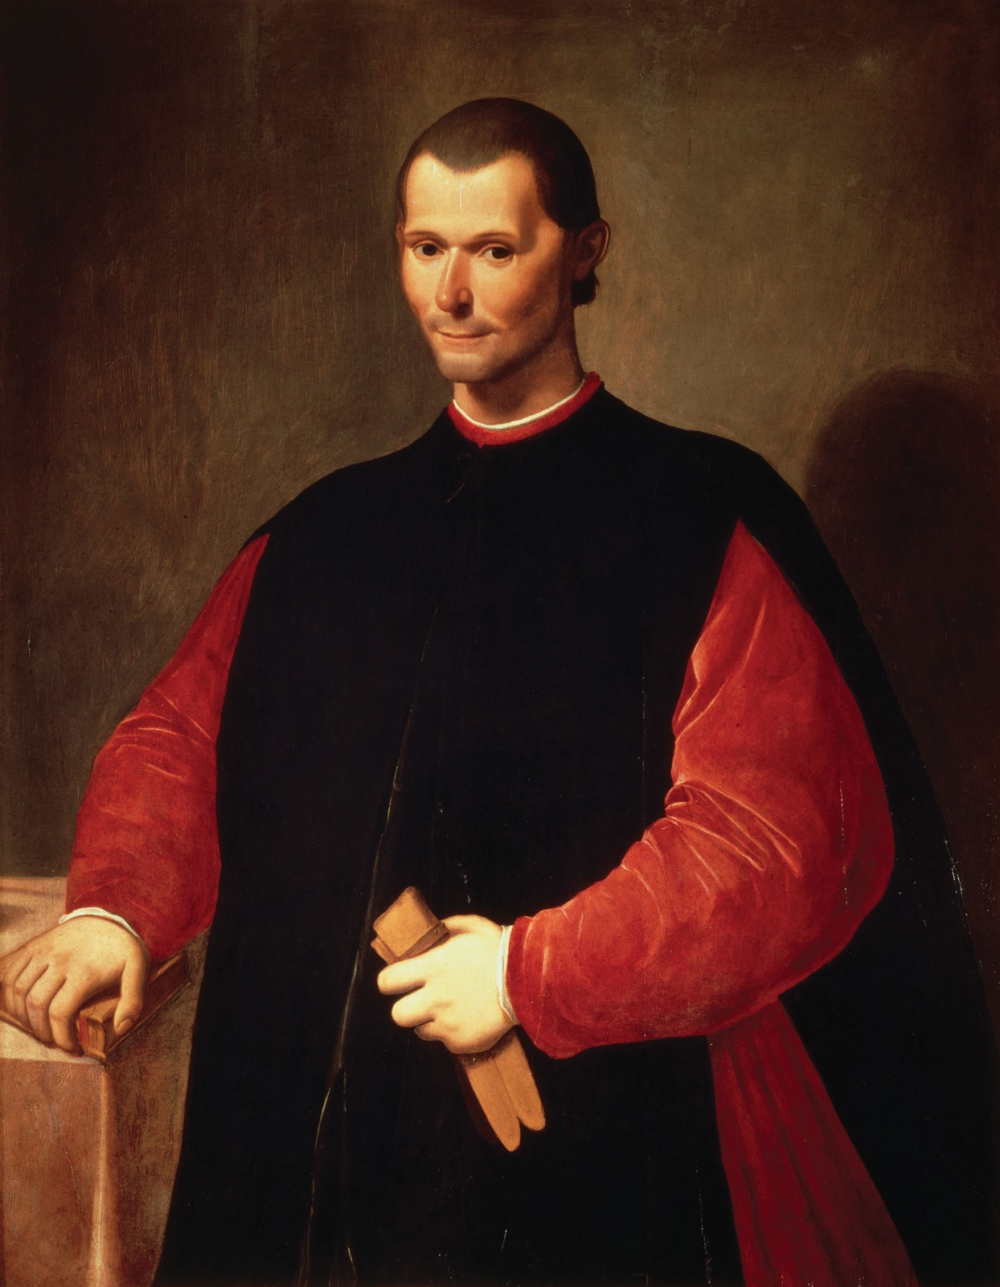 a reflection on the ideas on human nature by niccolo machiavelli and stephen l carter Niccolo machiavelli was an aristocrat who had his ups and downs according the shifts in power in florence his writings encourage a prince to secure power by almost any means necessary lao-tzu's thoughts from the tao- te ching and niccolo machiavelli's the qualities of the prince both have main goals of how to mold.